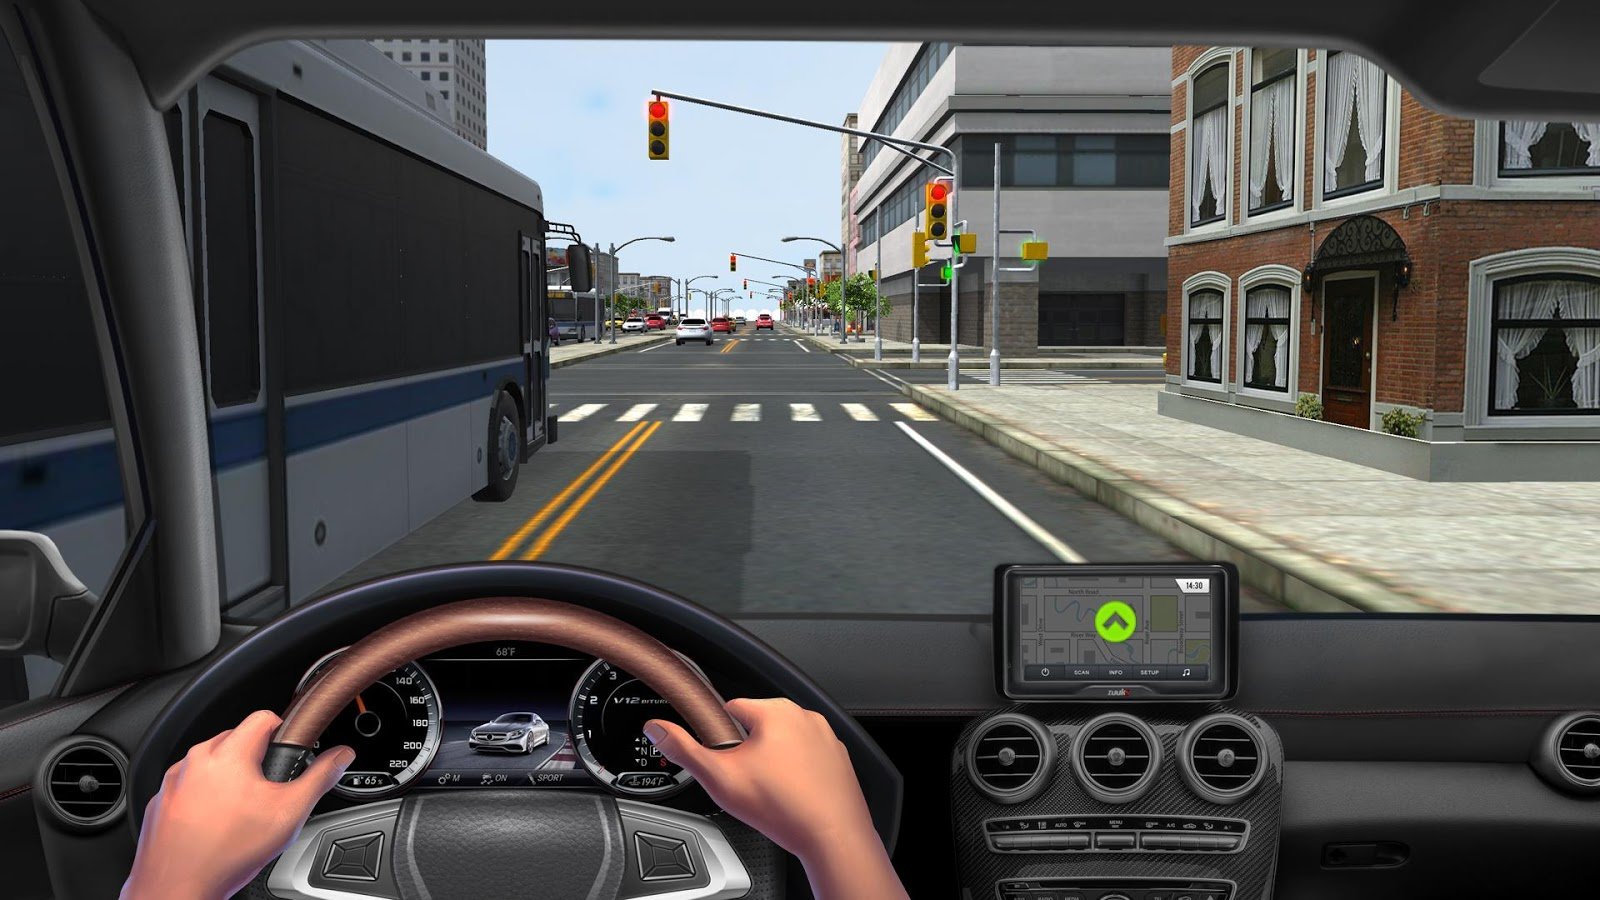 city driving Steam workshop: greenlight the car driving game named city car driving is a new car simulator, designed to help users feel the car driving in а big city.